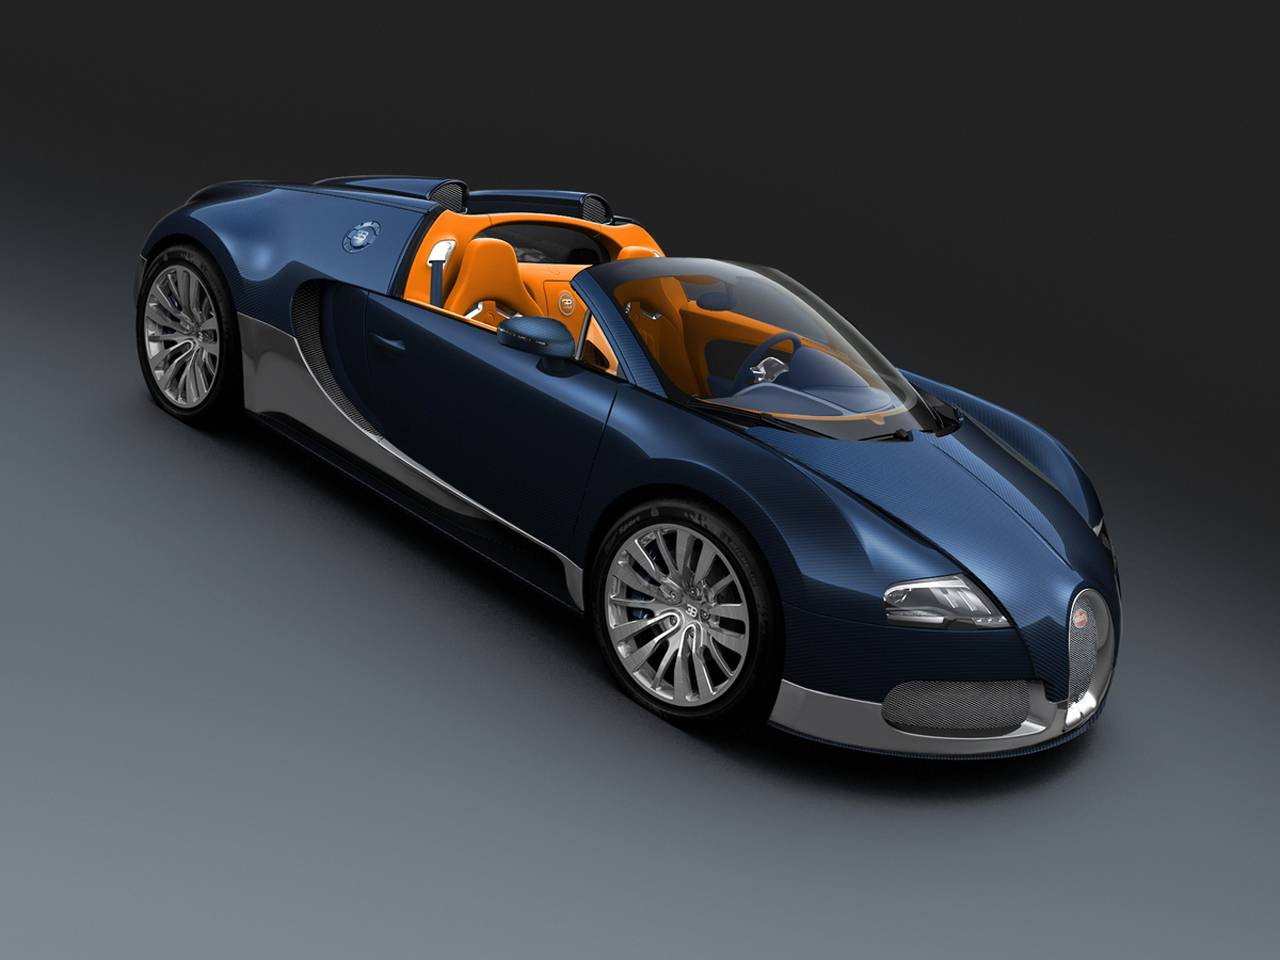 Bugatti's Veyron Grand Sports Heads to Dubai Motor Show